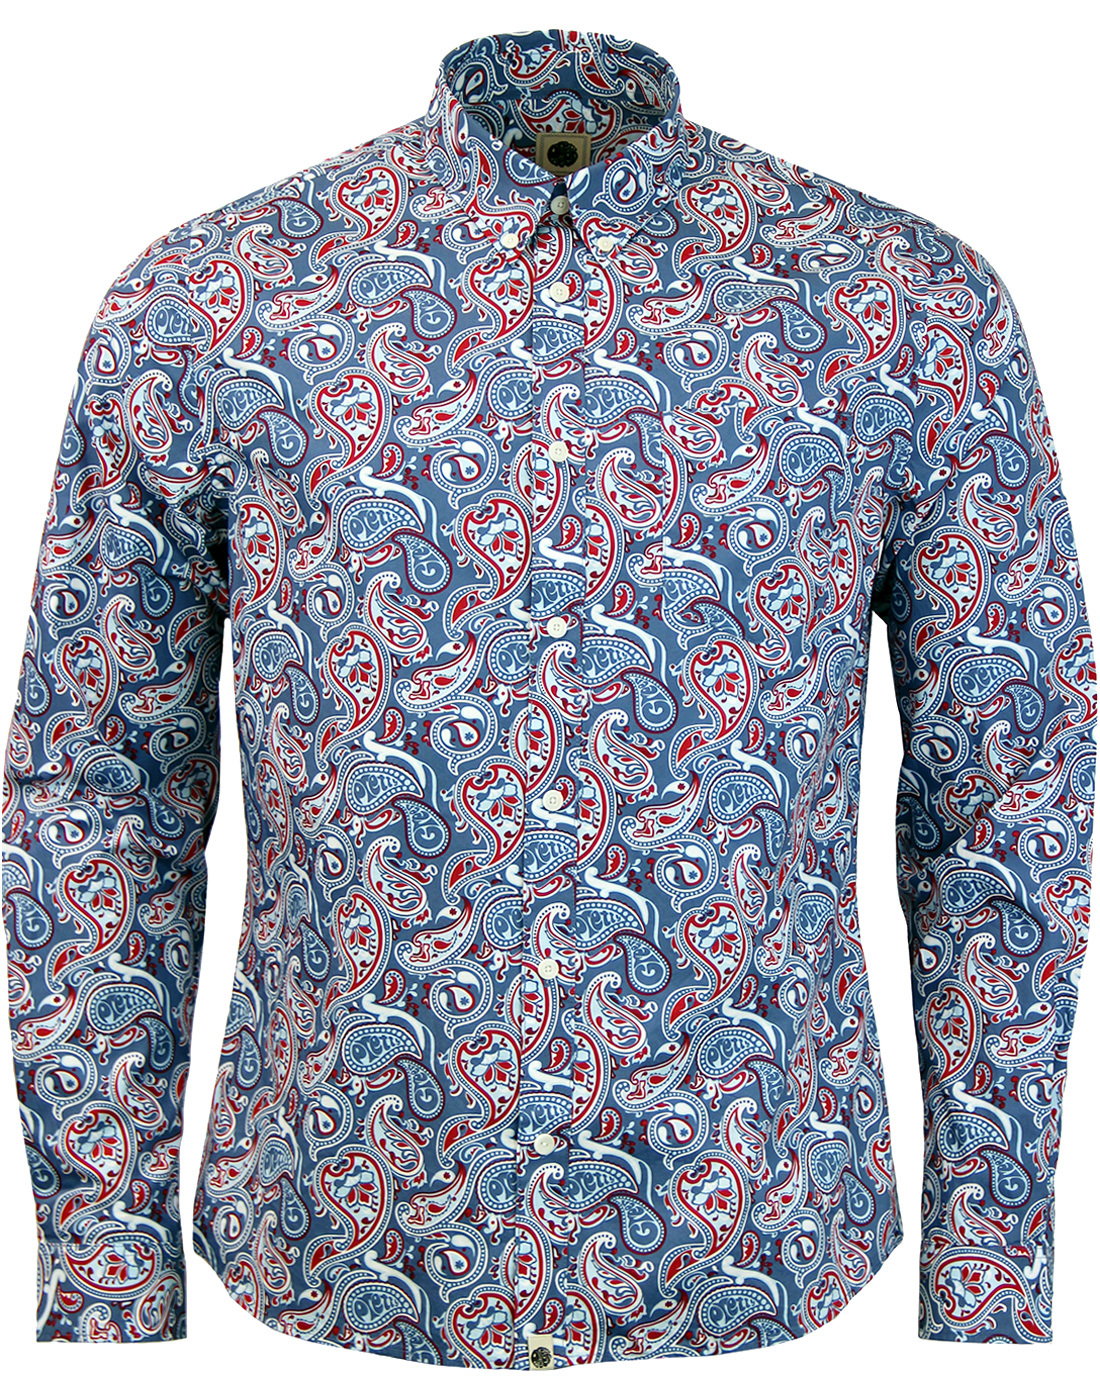 Camley Paisley PRETTY GREEN Psychedelic Mod Shirt